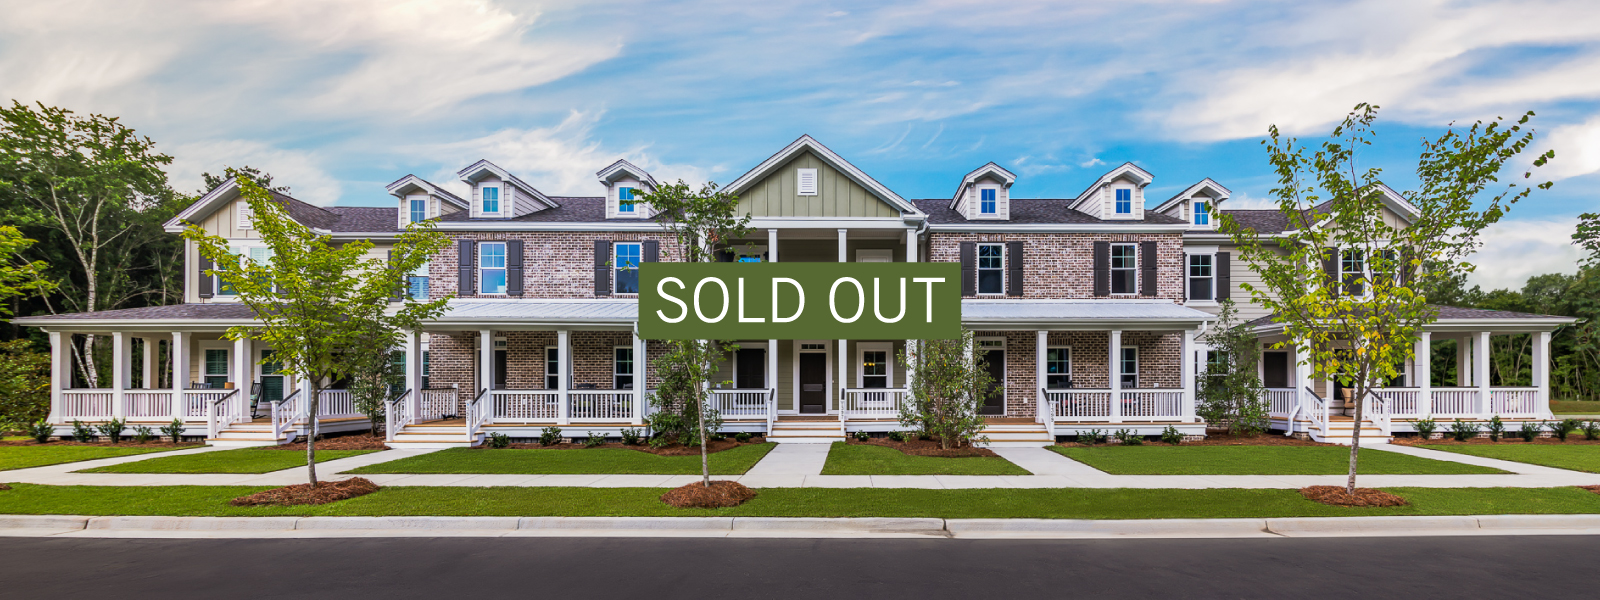 Townhouses_SoldOut_1600X600_4.jpg